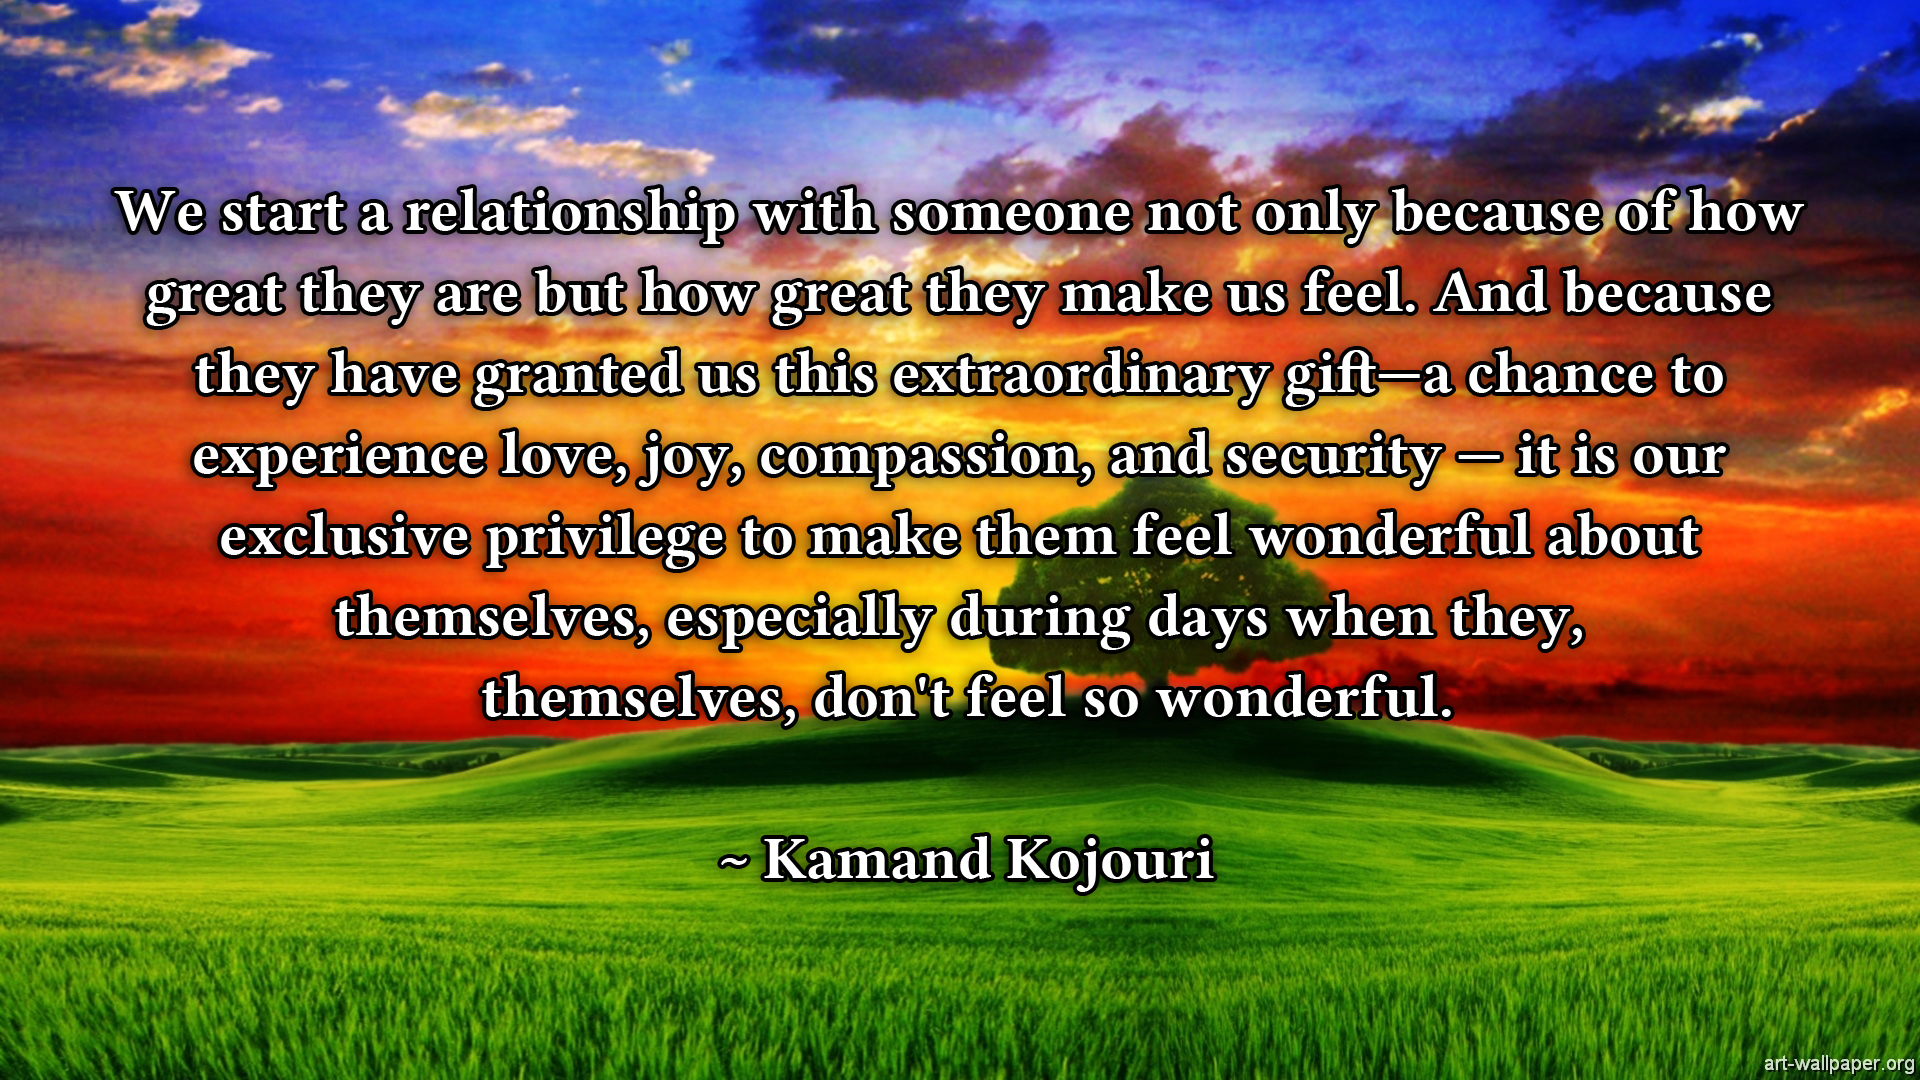 A Quote by Kamand Kojouri 2.jpg